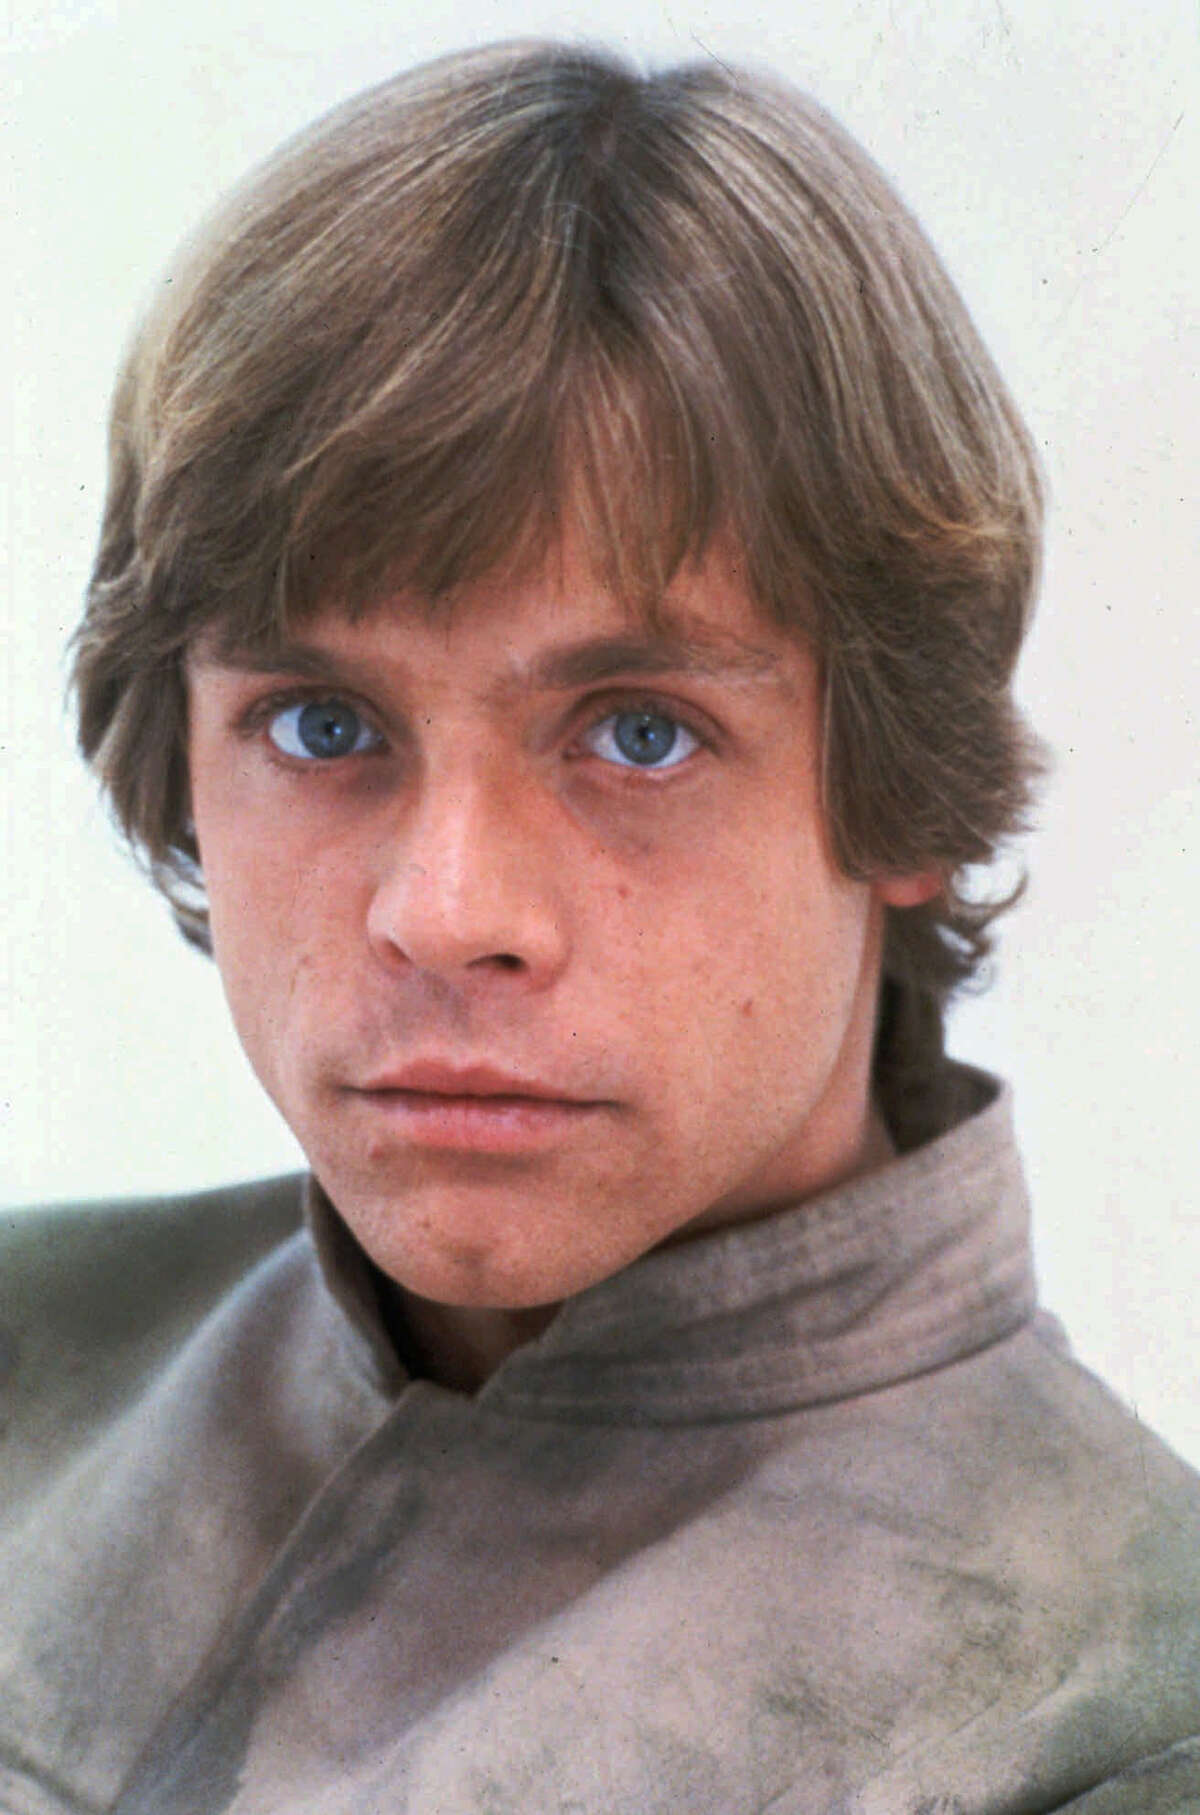 Actor Mark Hamill turned 61 Tuesday. We were going to say he's best known for playing Luke Skywalker in the original three